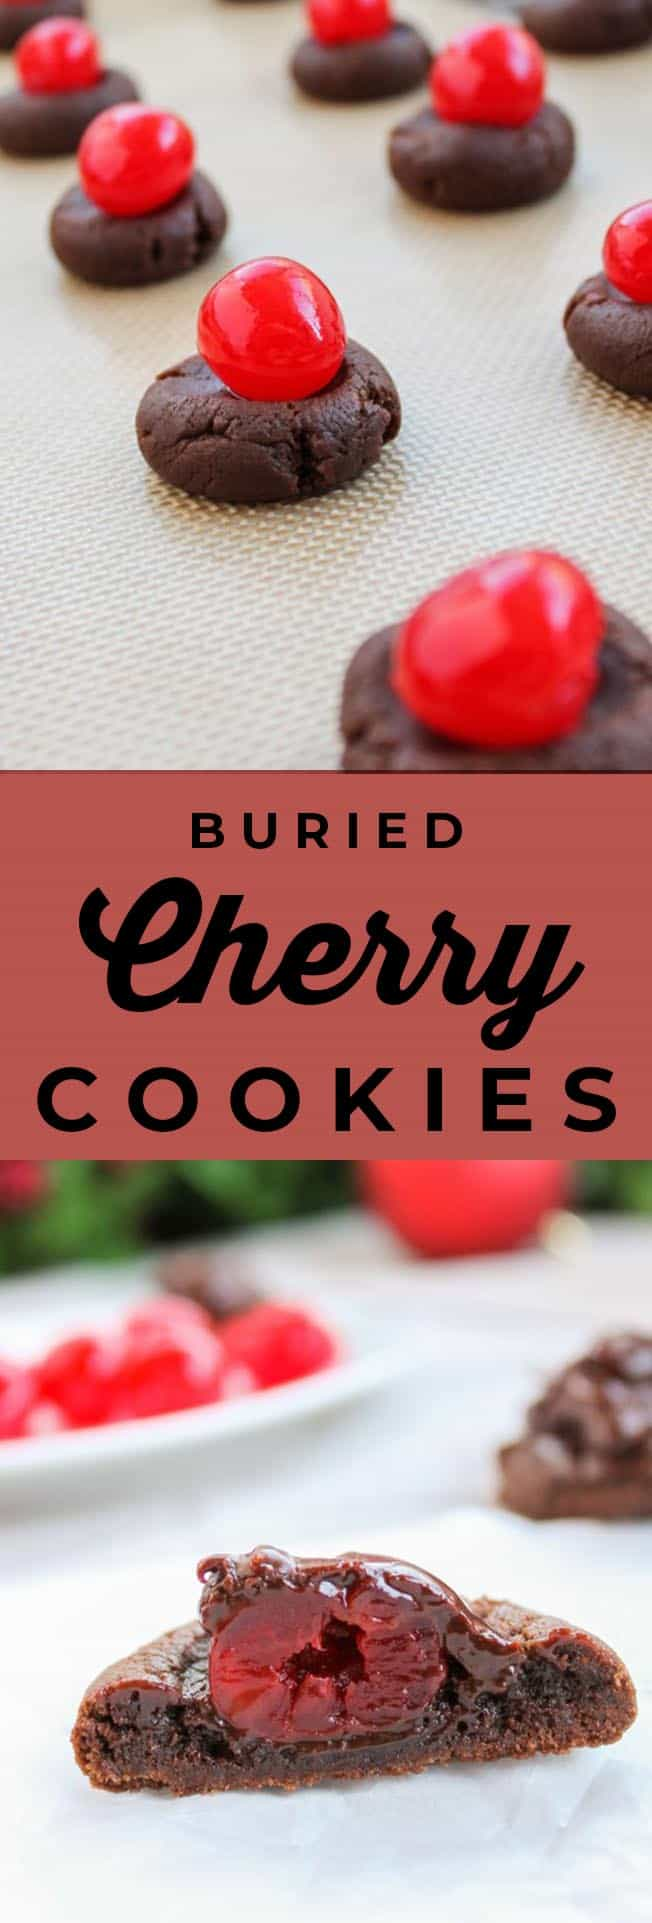 buried cherry cookies